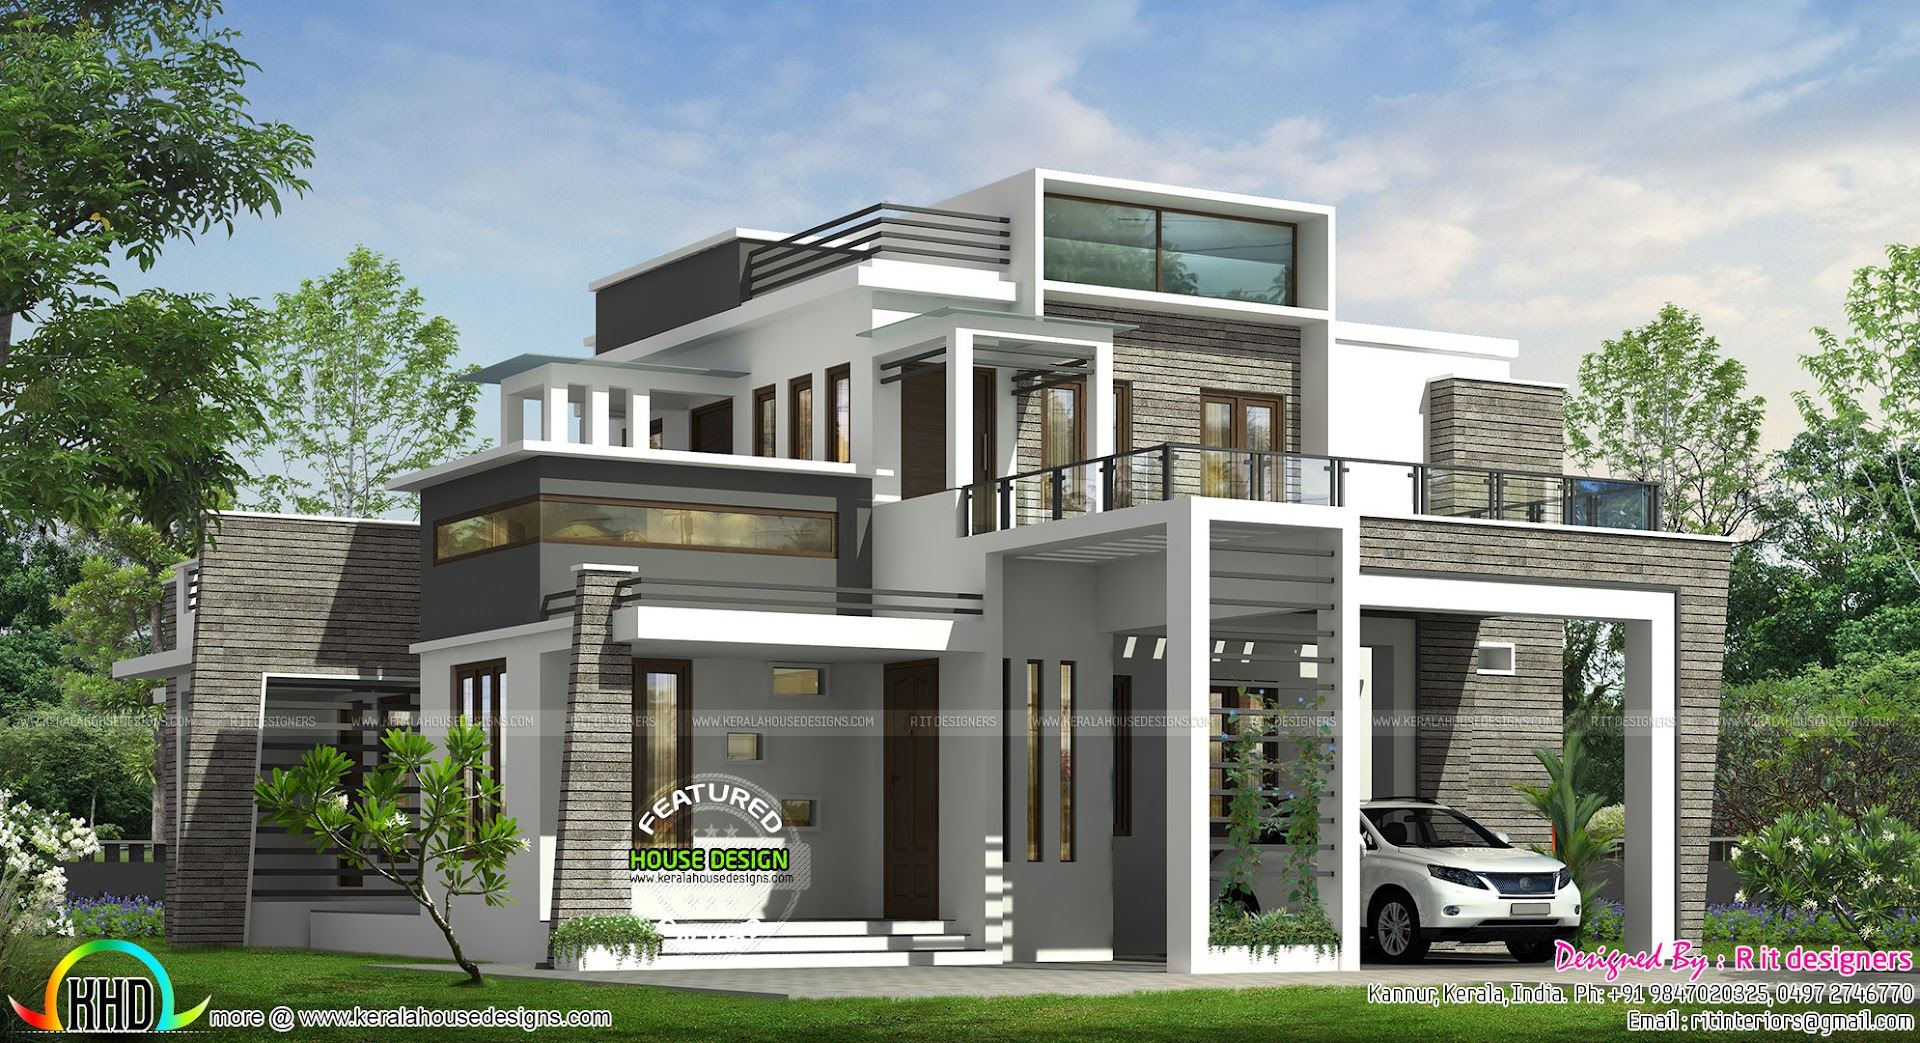 4 bhk modern box type house kerala home design and floor for Modern big house design